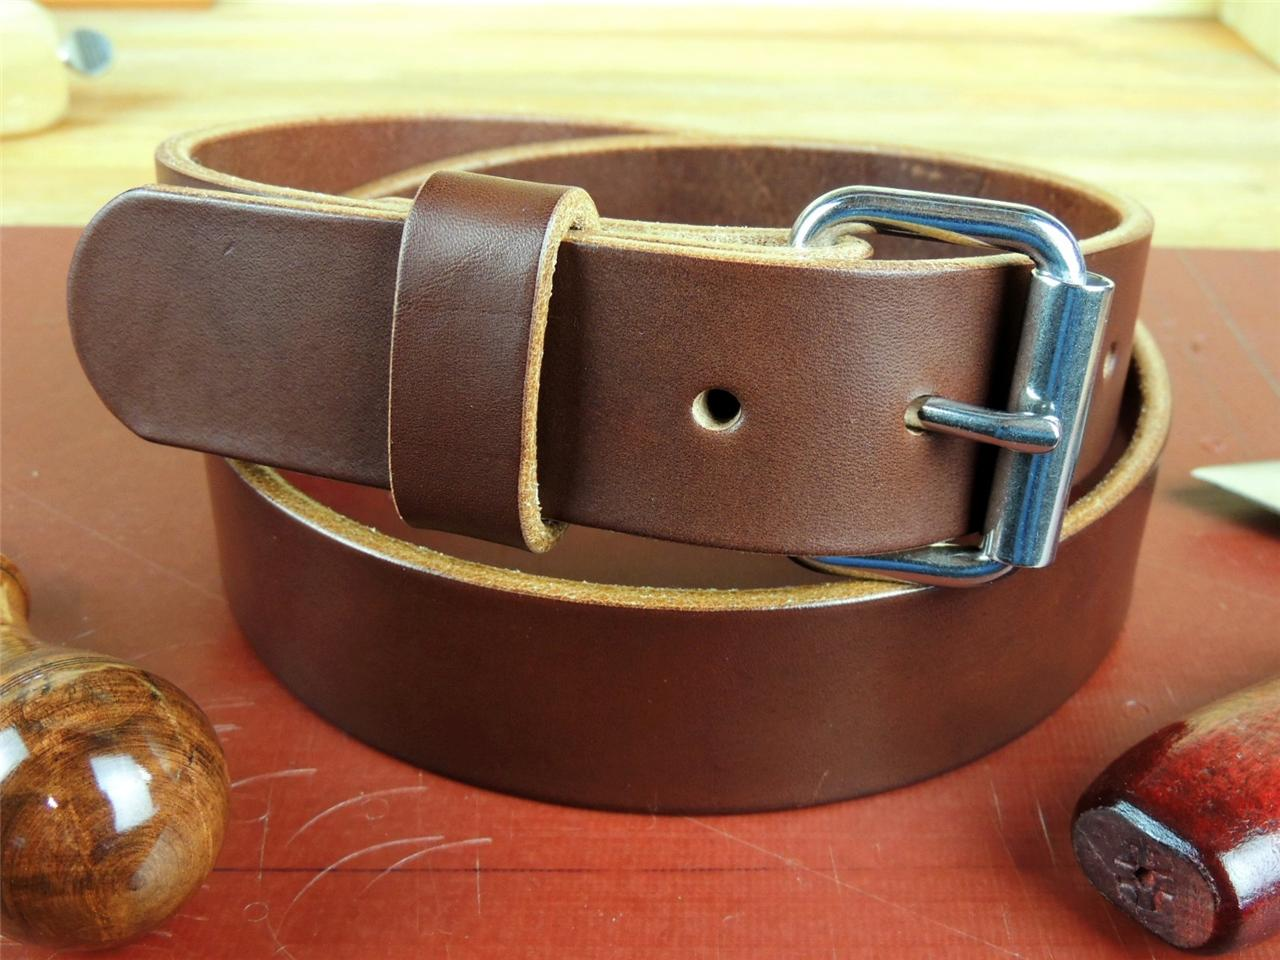 HC150-1-1-2-HEAVY-DUTY-LEATHER-WORK-TOOL-HOLSTER-BELT-AMISH-HANDMADE-1-50-NEW